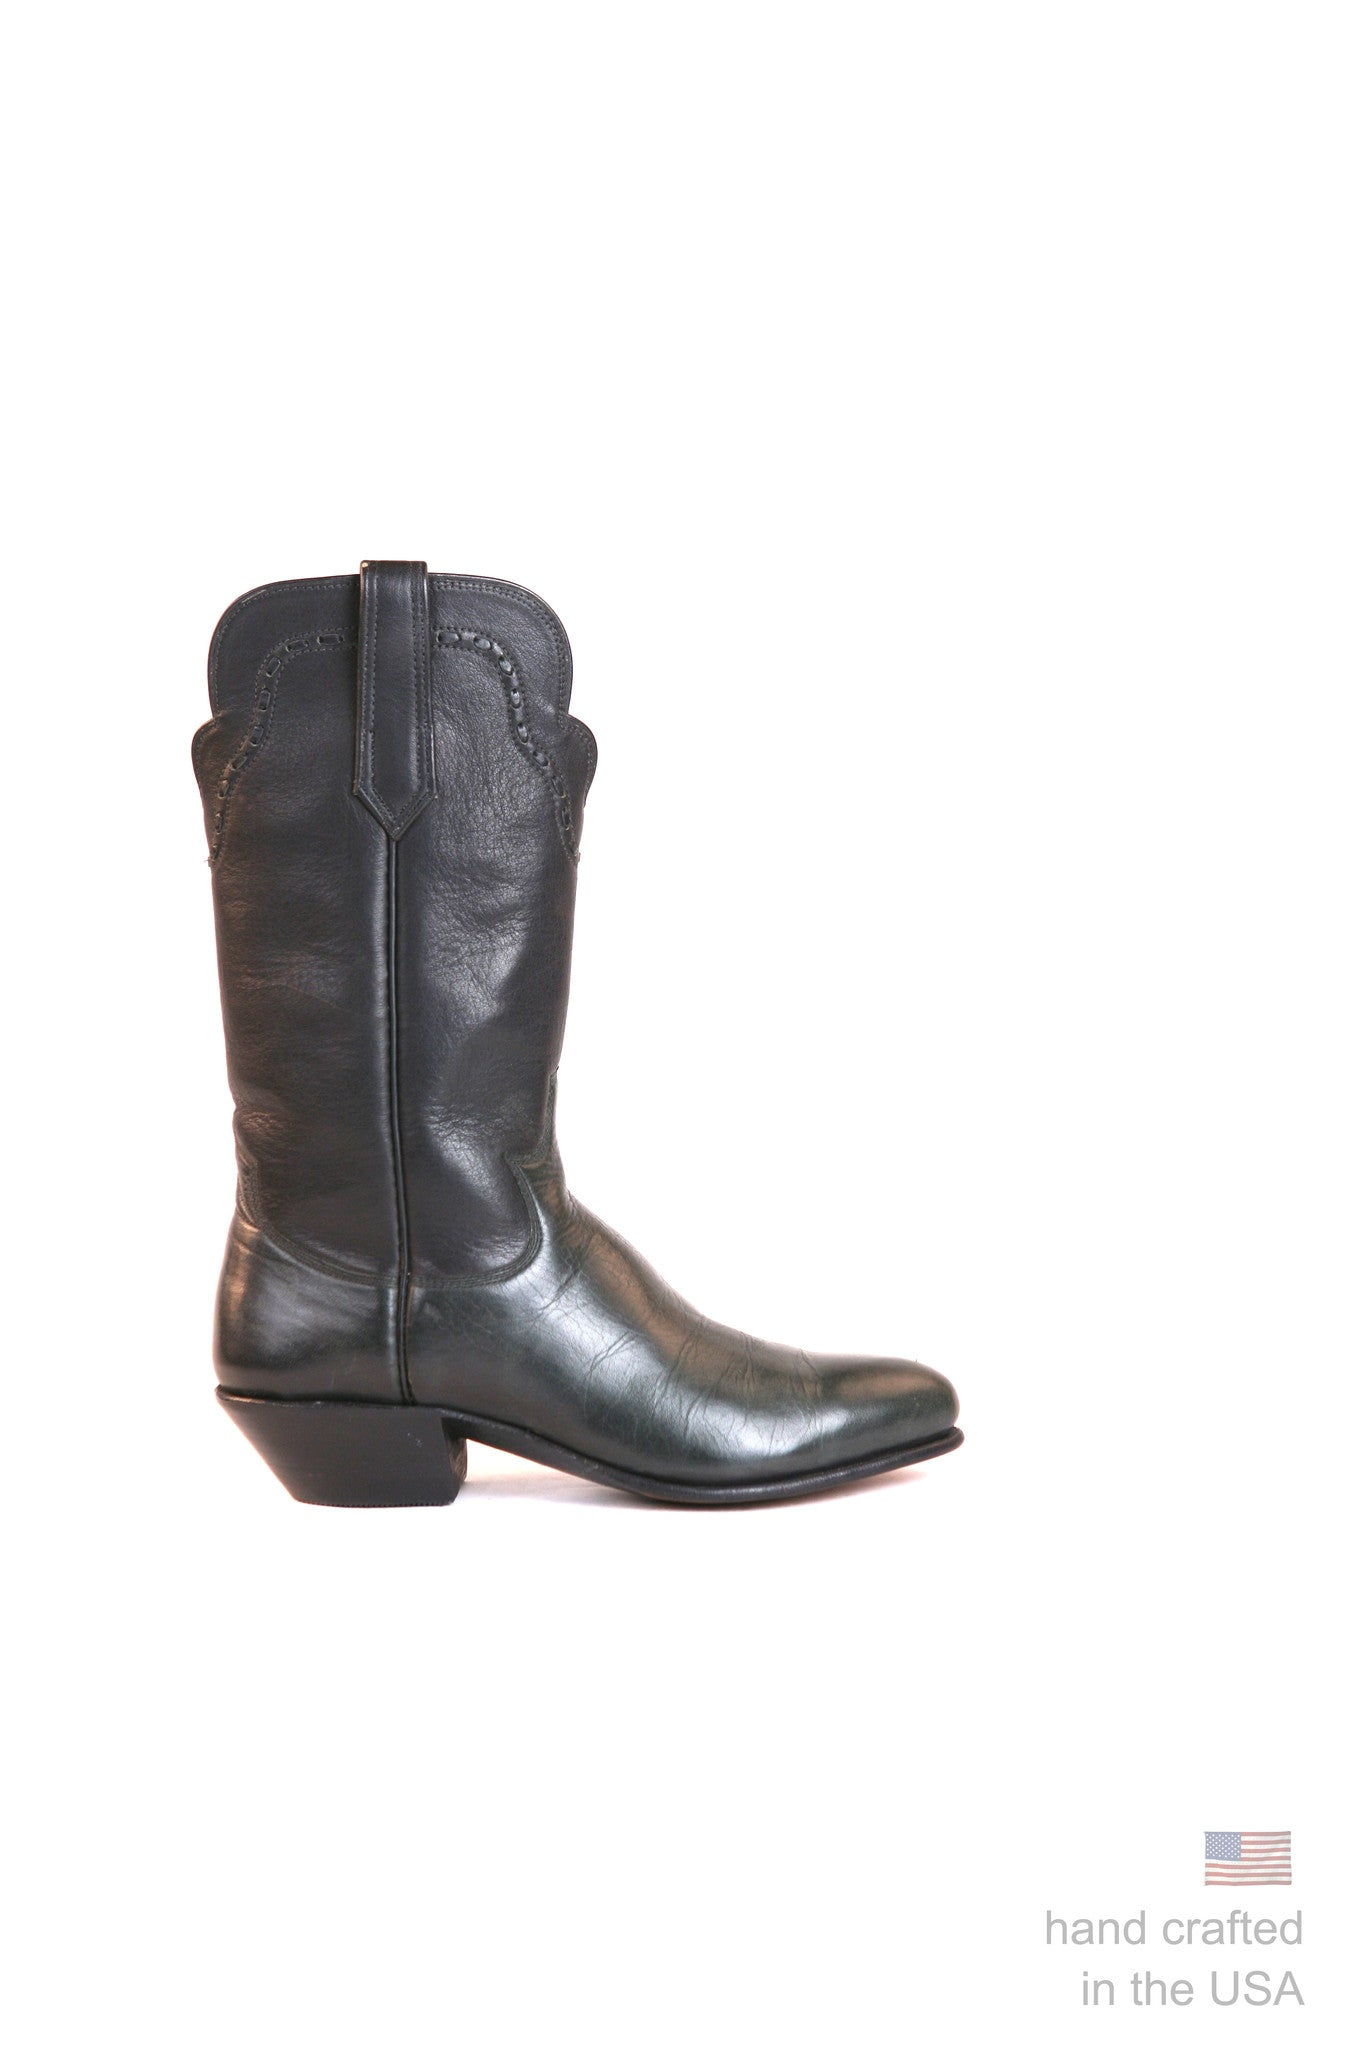 Singles: Boot 0045: Size 7.5 C